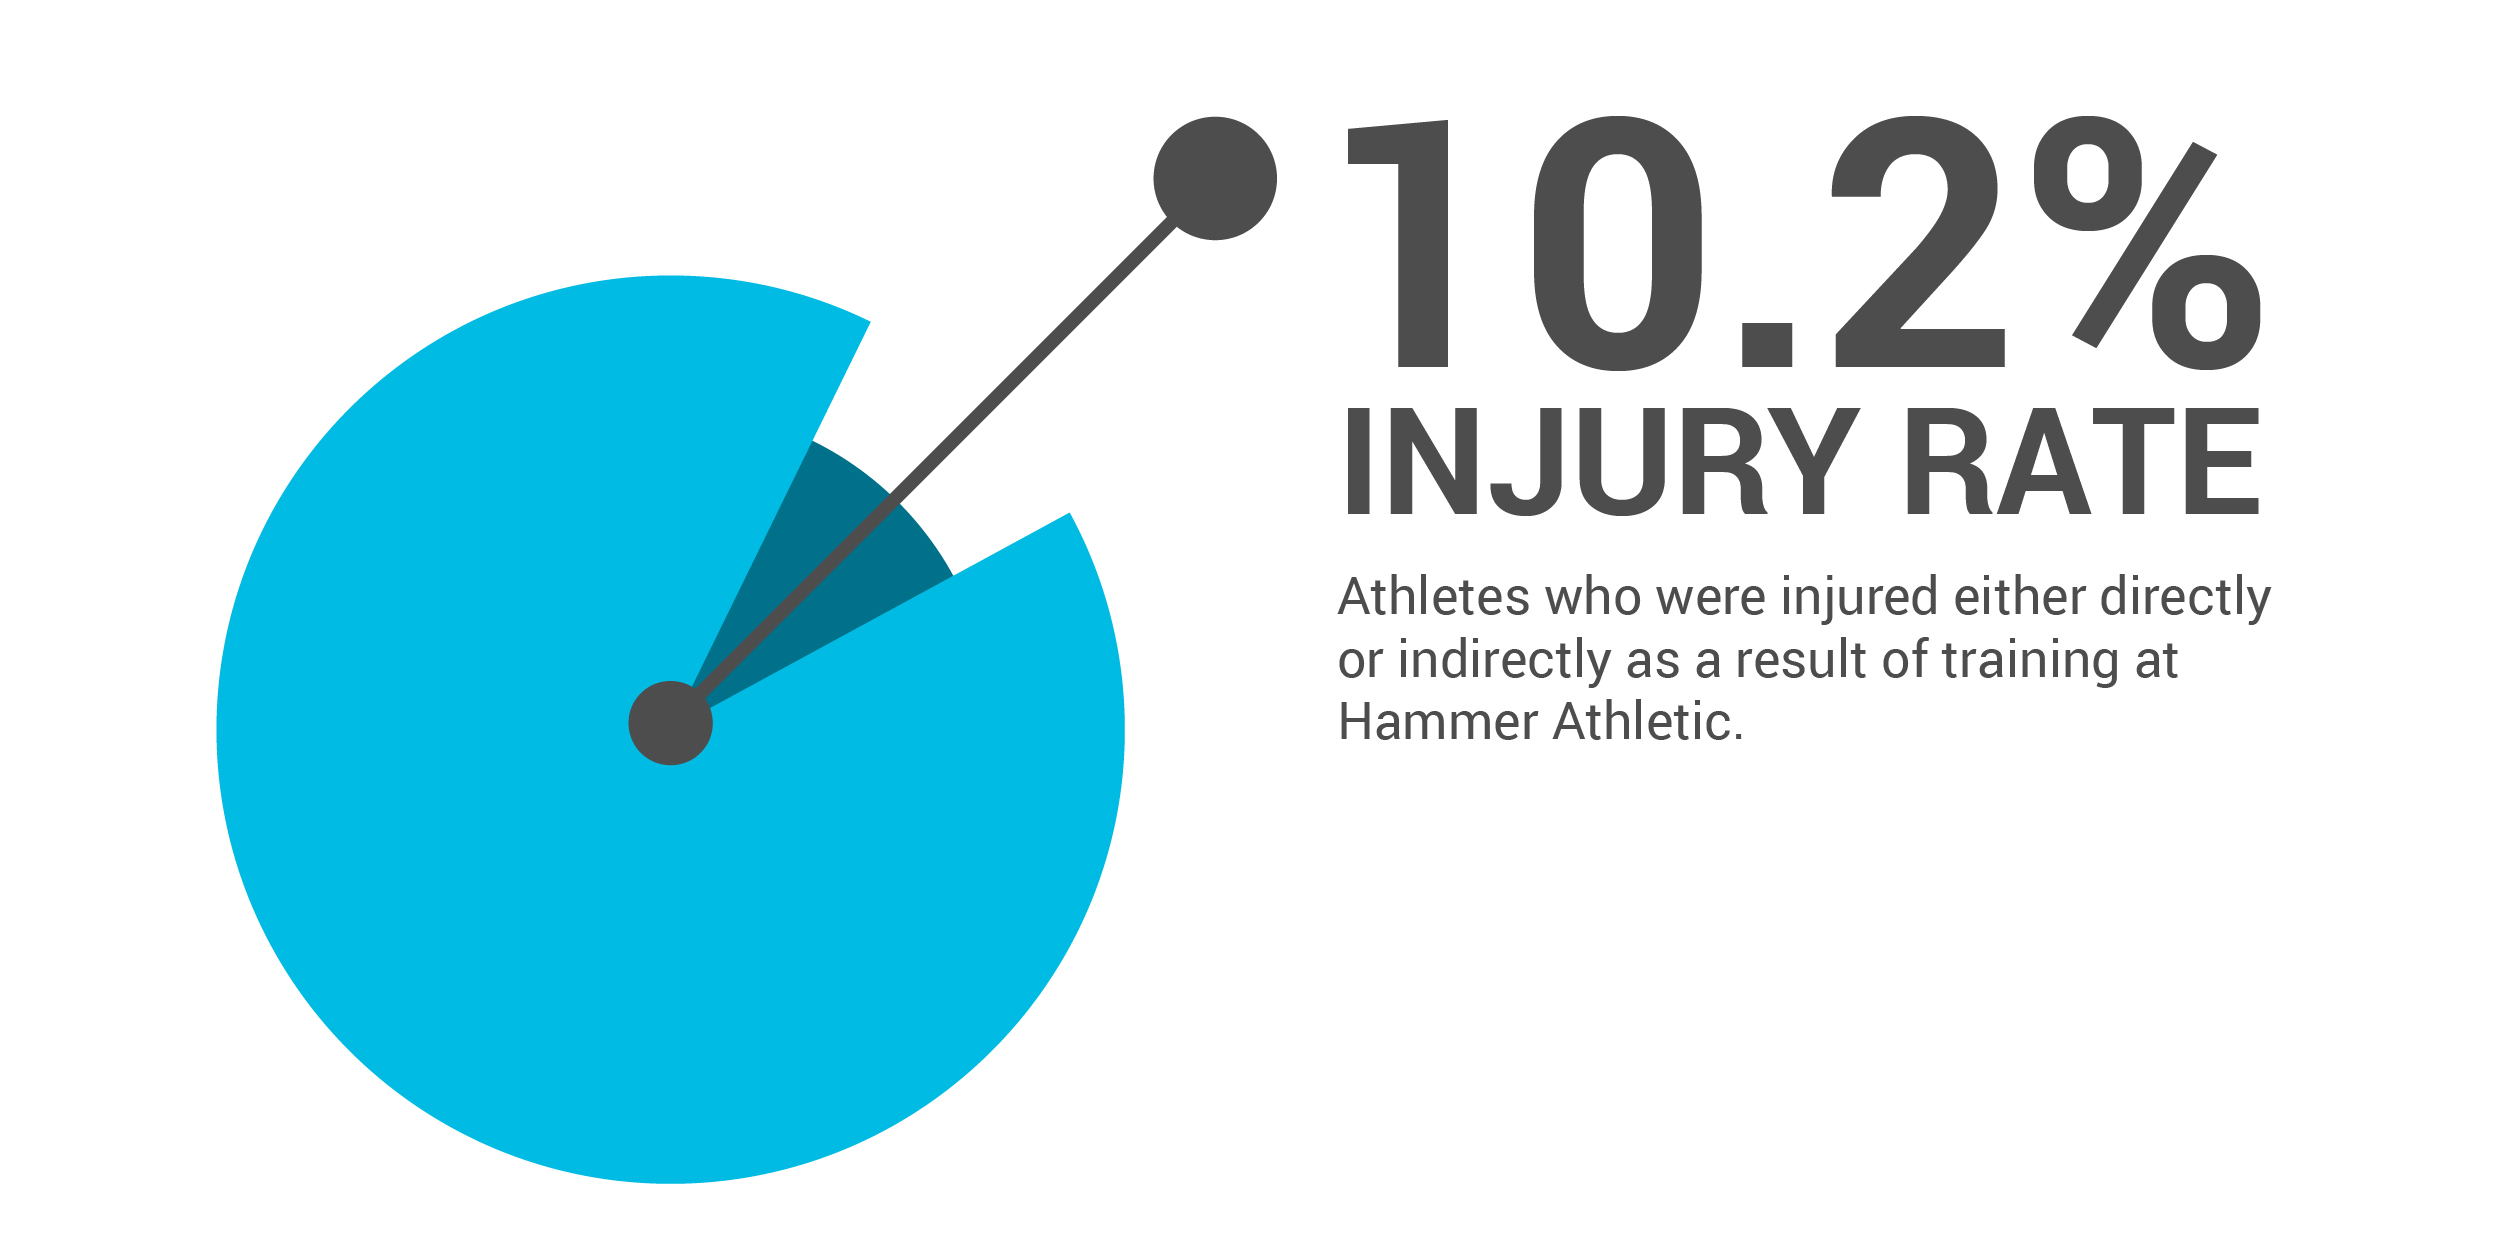 Injury Rate